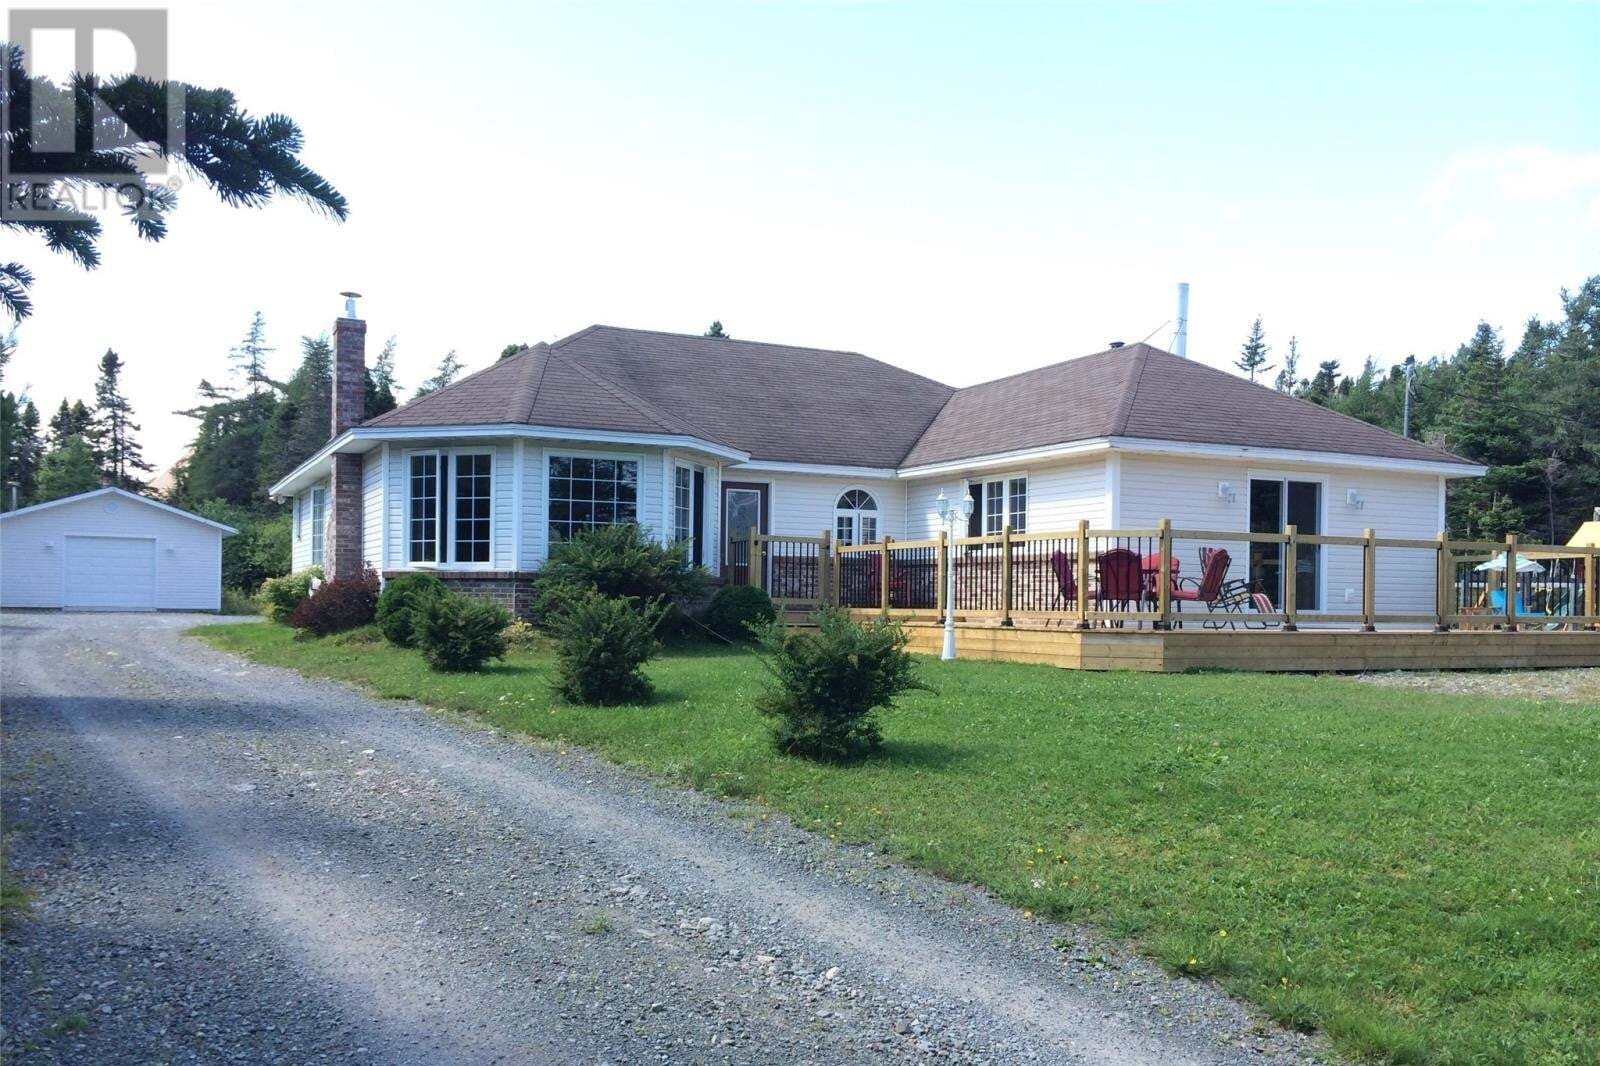 House for sale at 24 Ryans Rd Spaniards Bay Newfoundland - MLS: 1214528